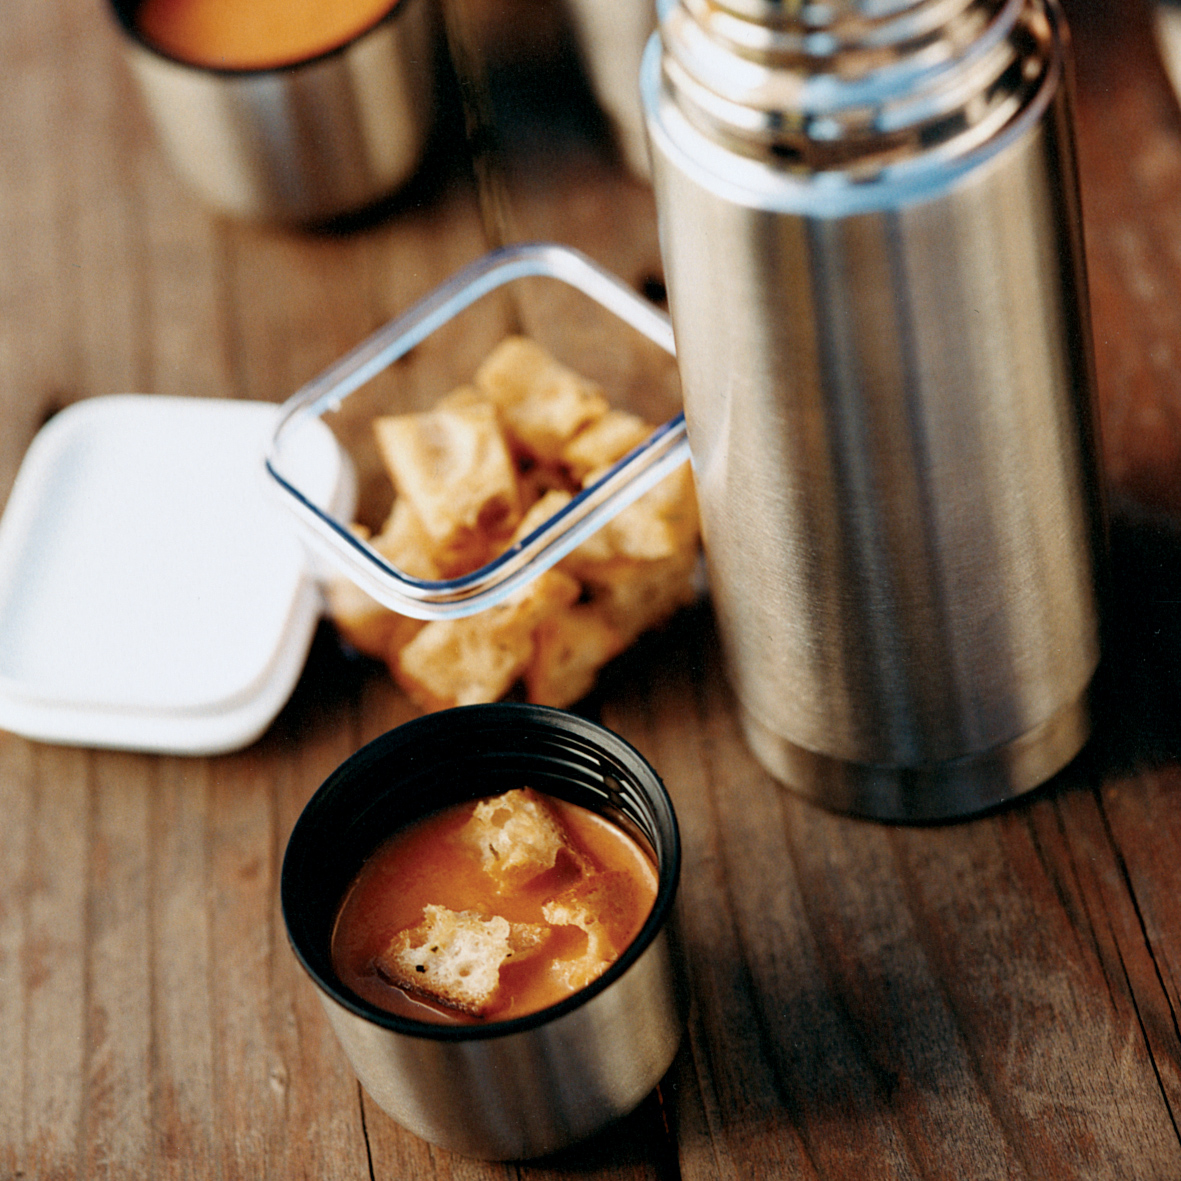 Tangy Tomato Soup With Tarragon Croutons